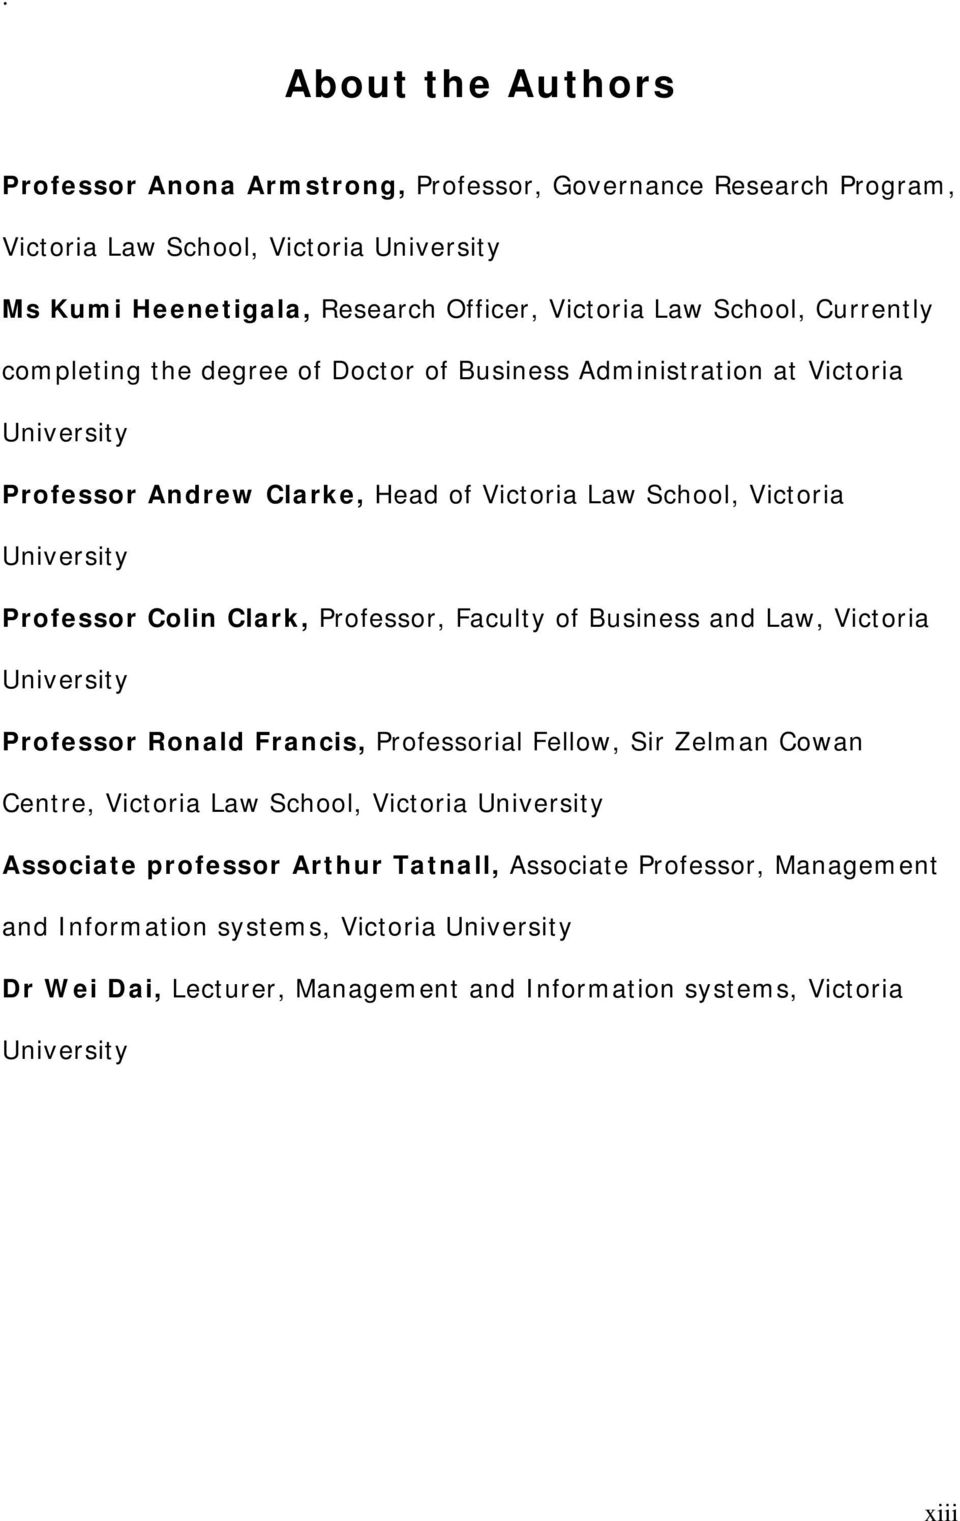 Clark, Professor, Faculty of Business and Law, Victoria University Professor Ronald Francis, Professorial Fellow, Sir Zelman Cowan Centre, Victoria Law School, Victoria University